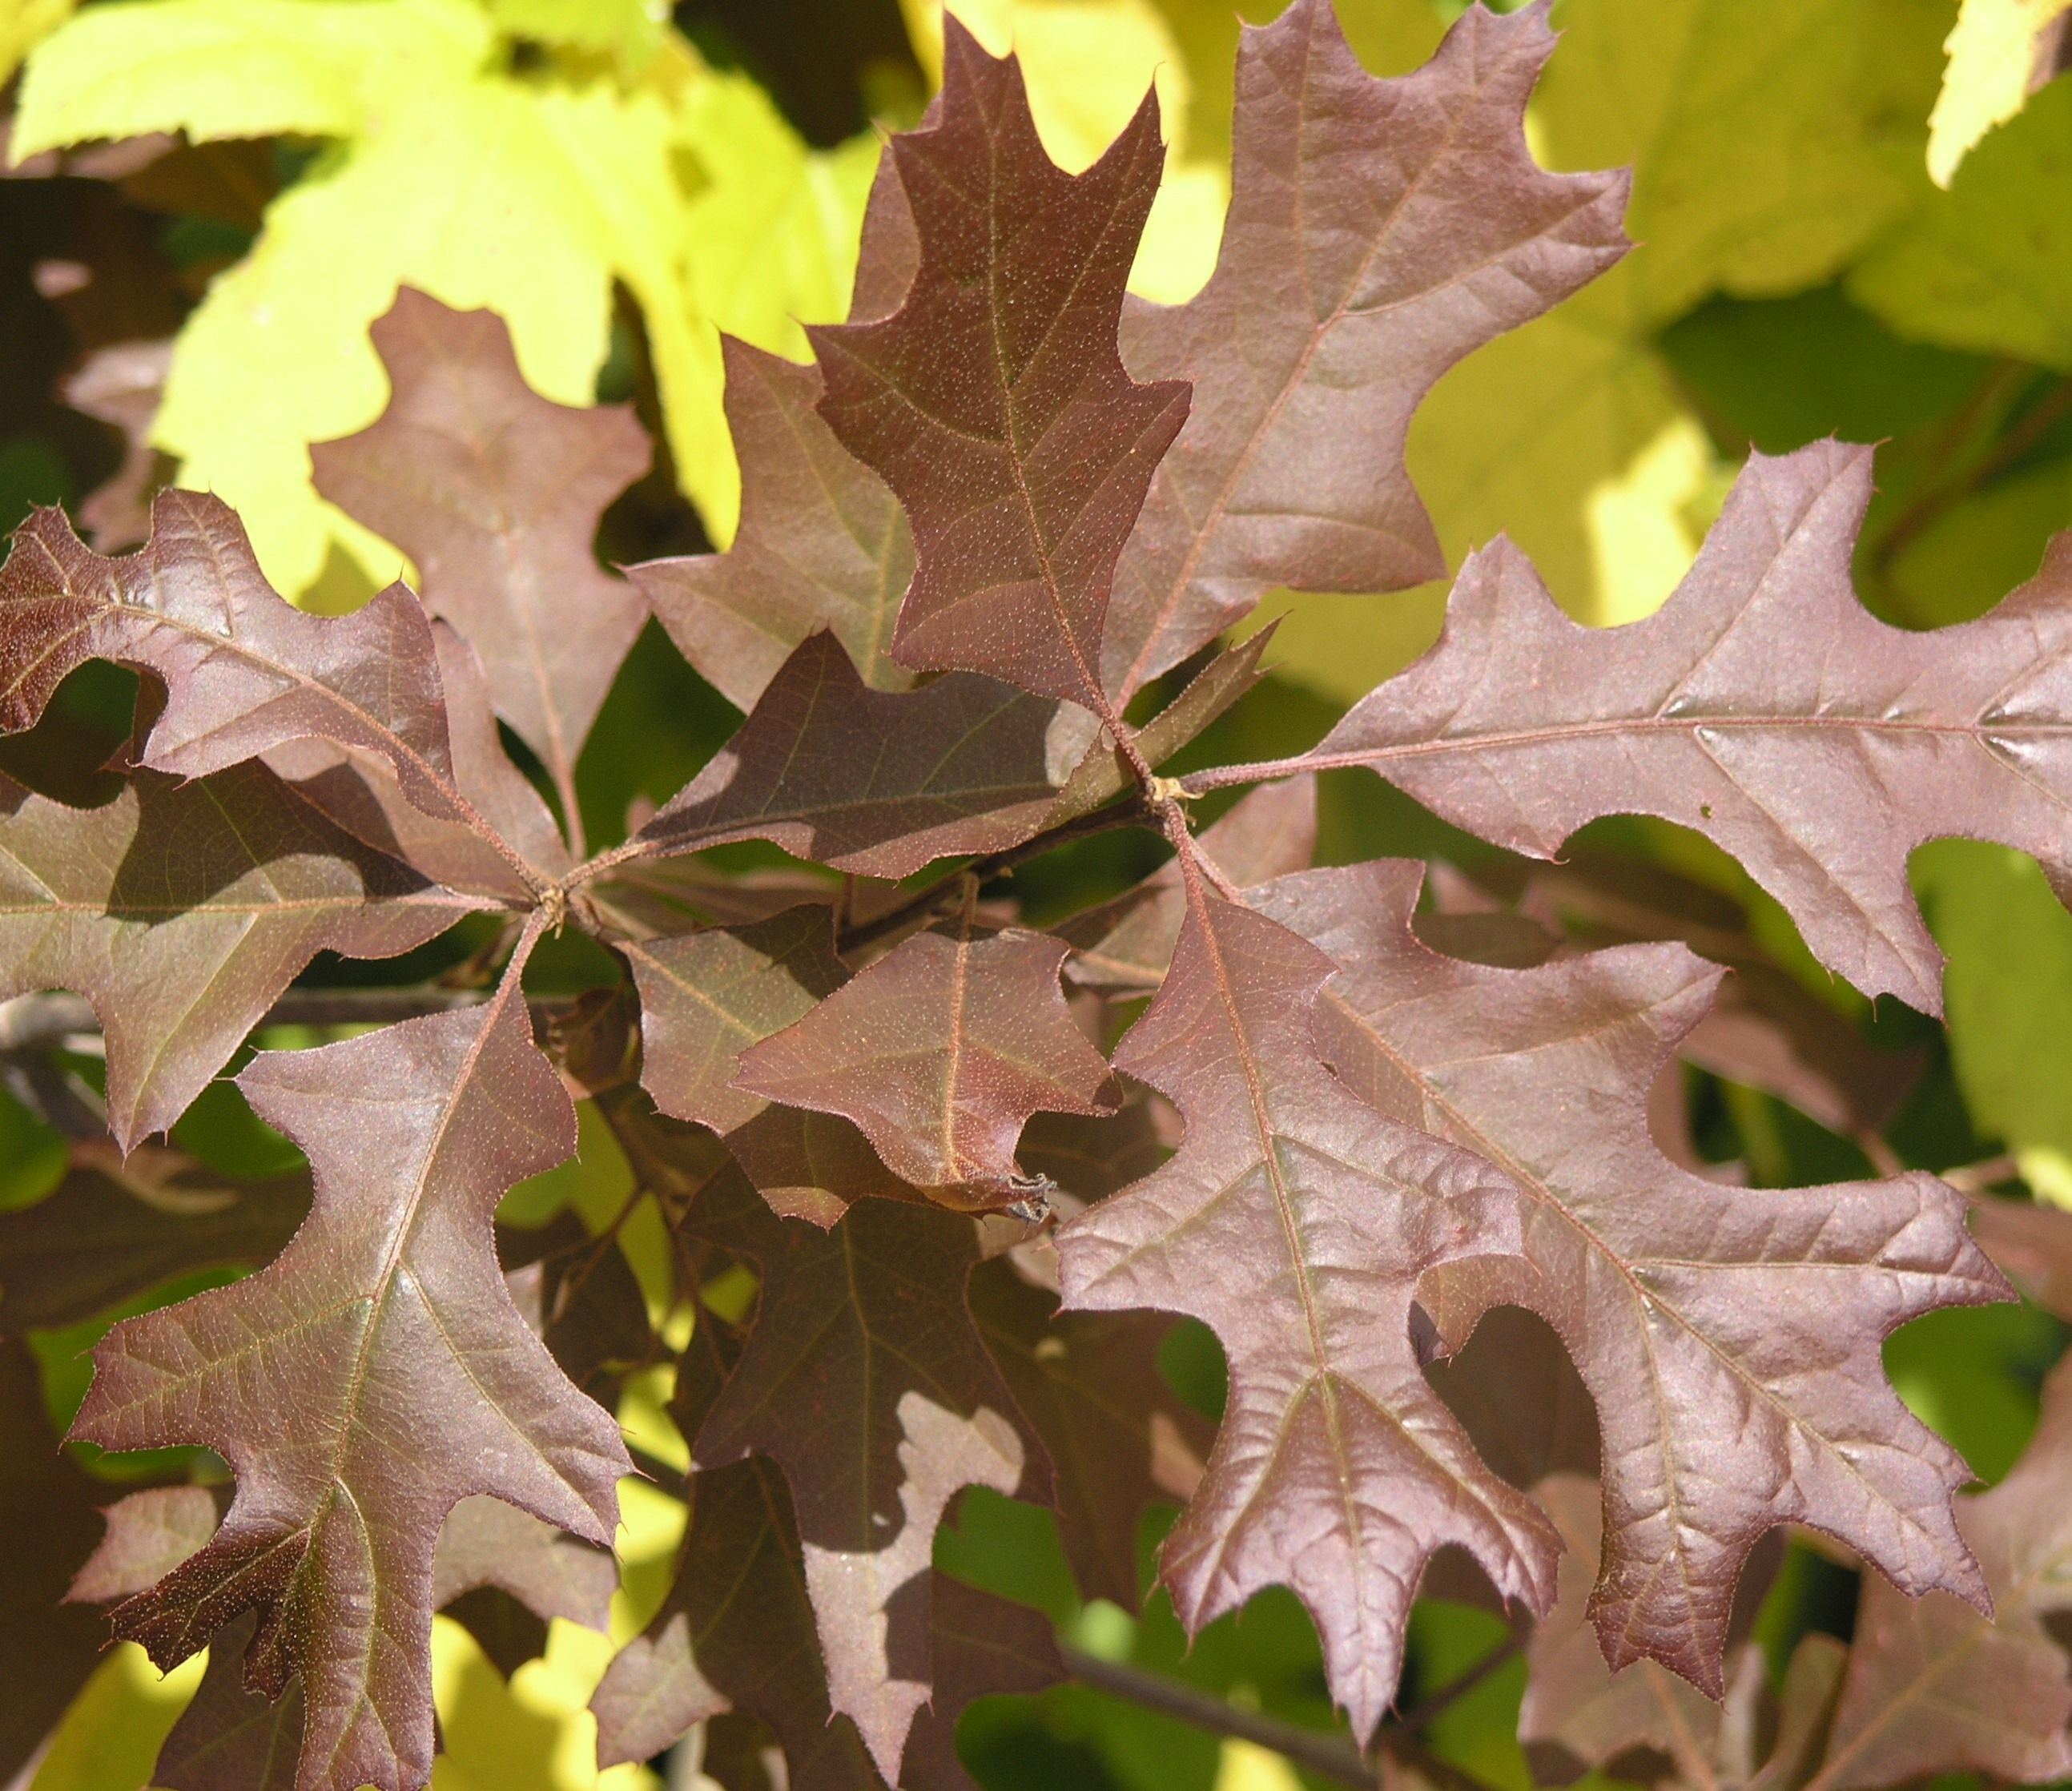 Charisma® Nuttall Oak is a handsome native tree with